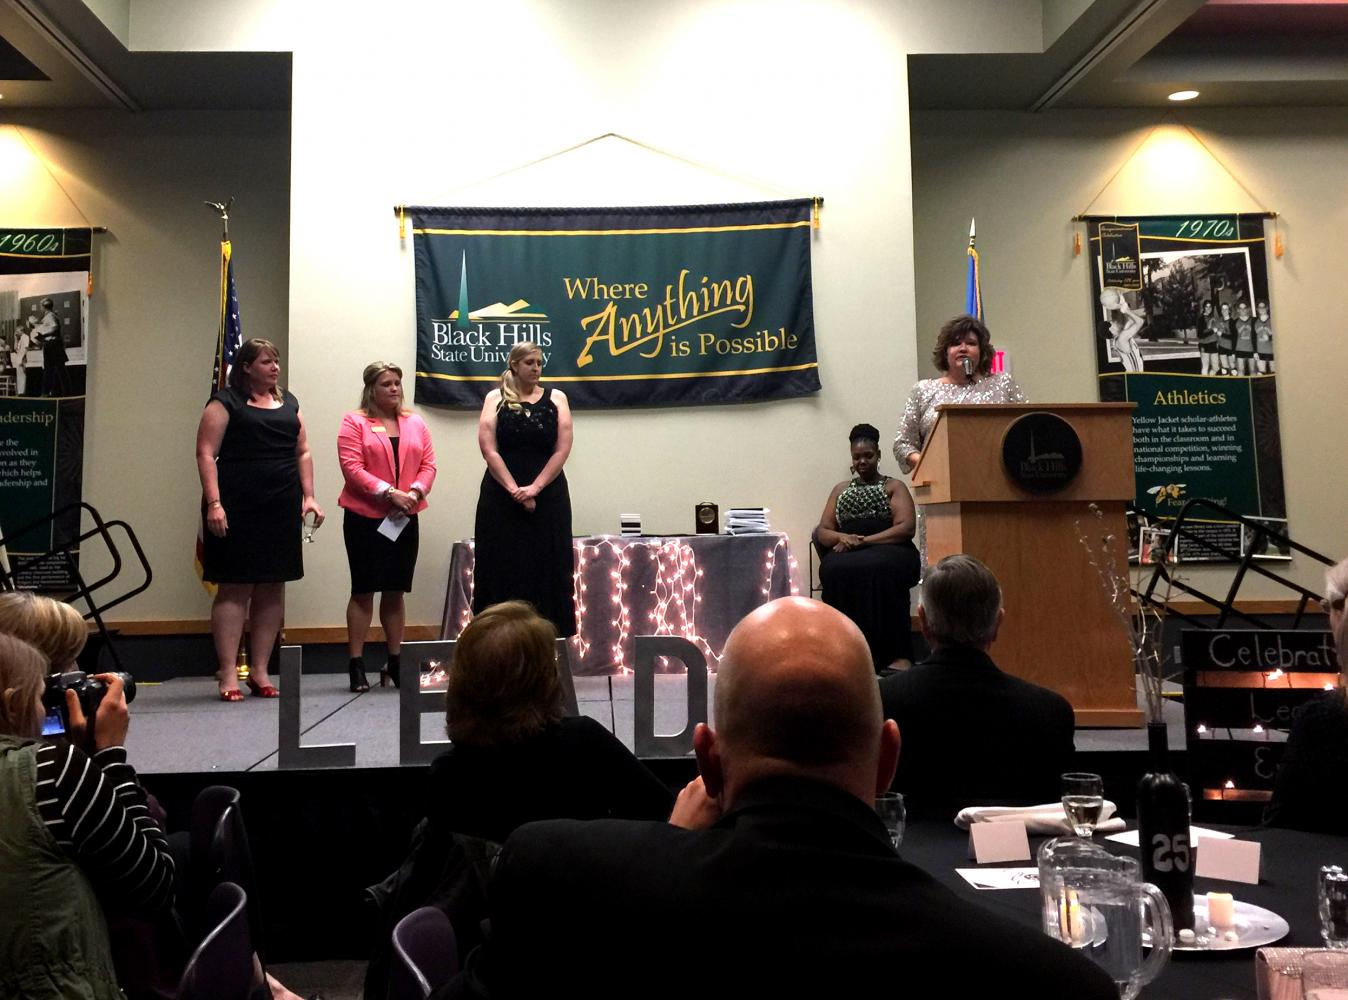 Dr. Jane Klug addresses the audience after several student testimonies from alumni Megan VonHaden, Lorrin Naasz and student Jessie Gramm about Jane's impact in students' lives.